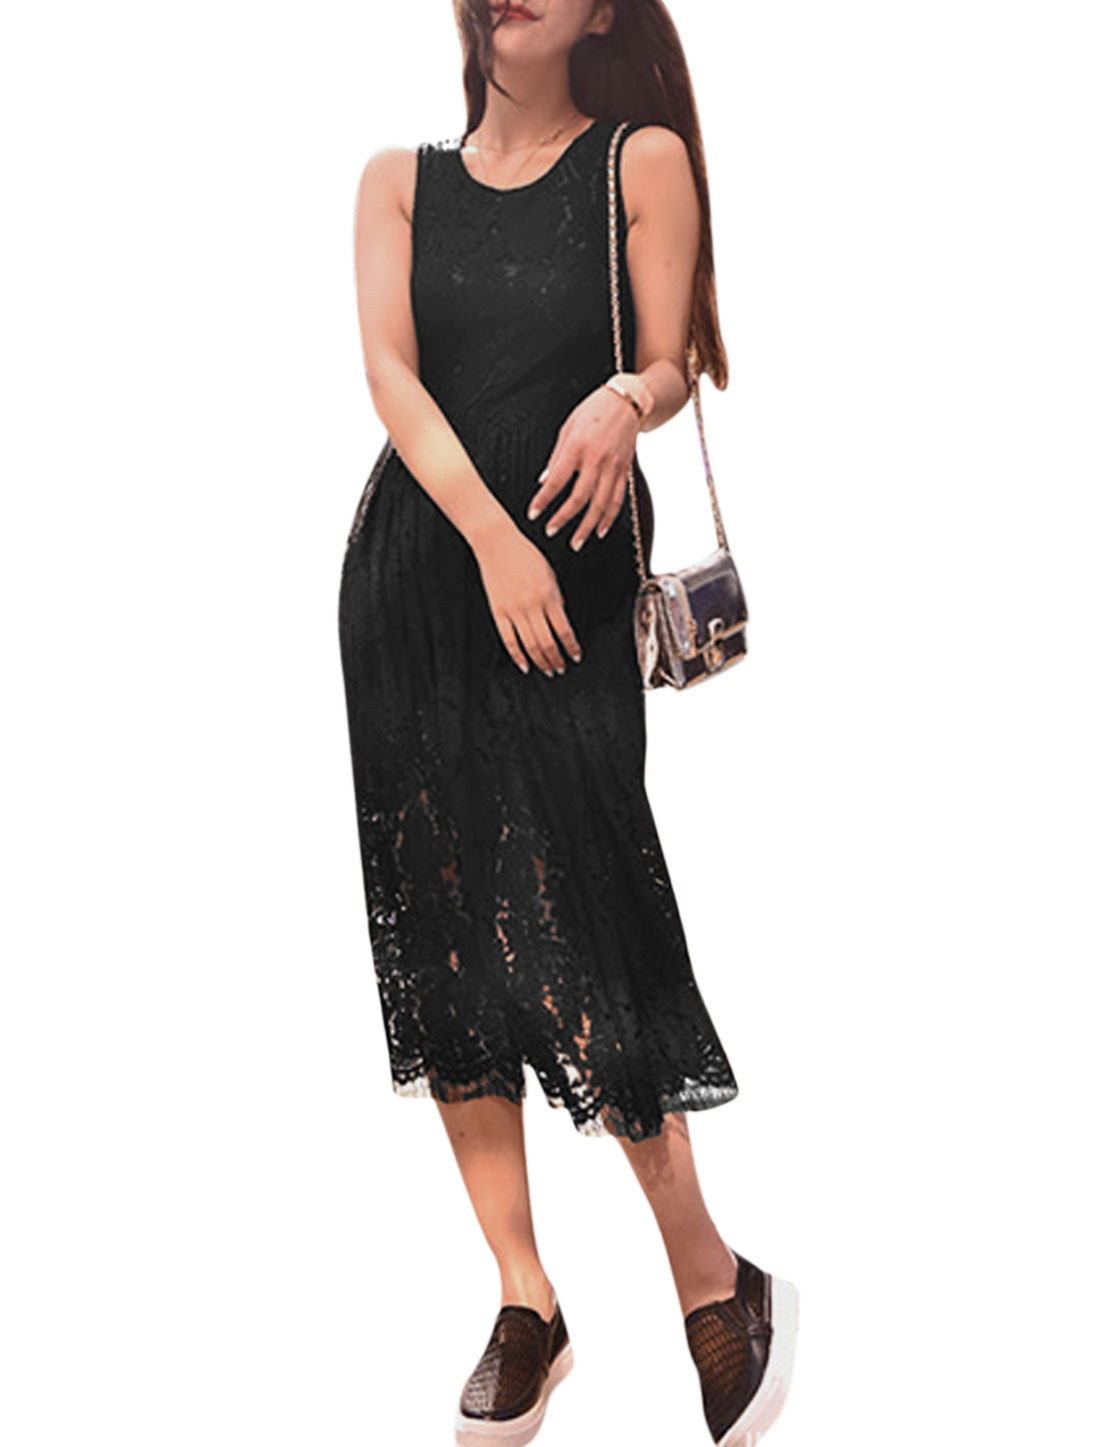 Woman Floral Design Round Neck Sleeveless Partially Lined Lace Dress Black